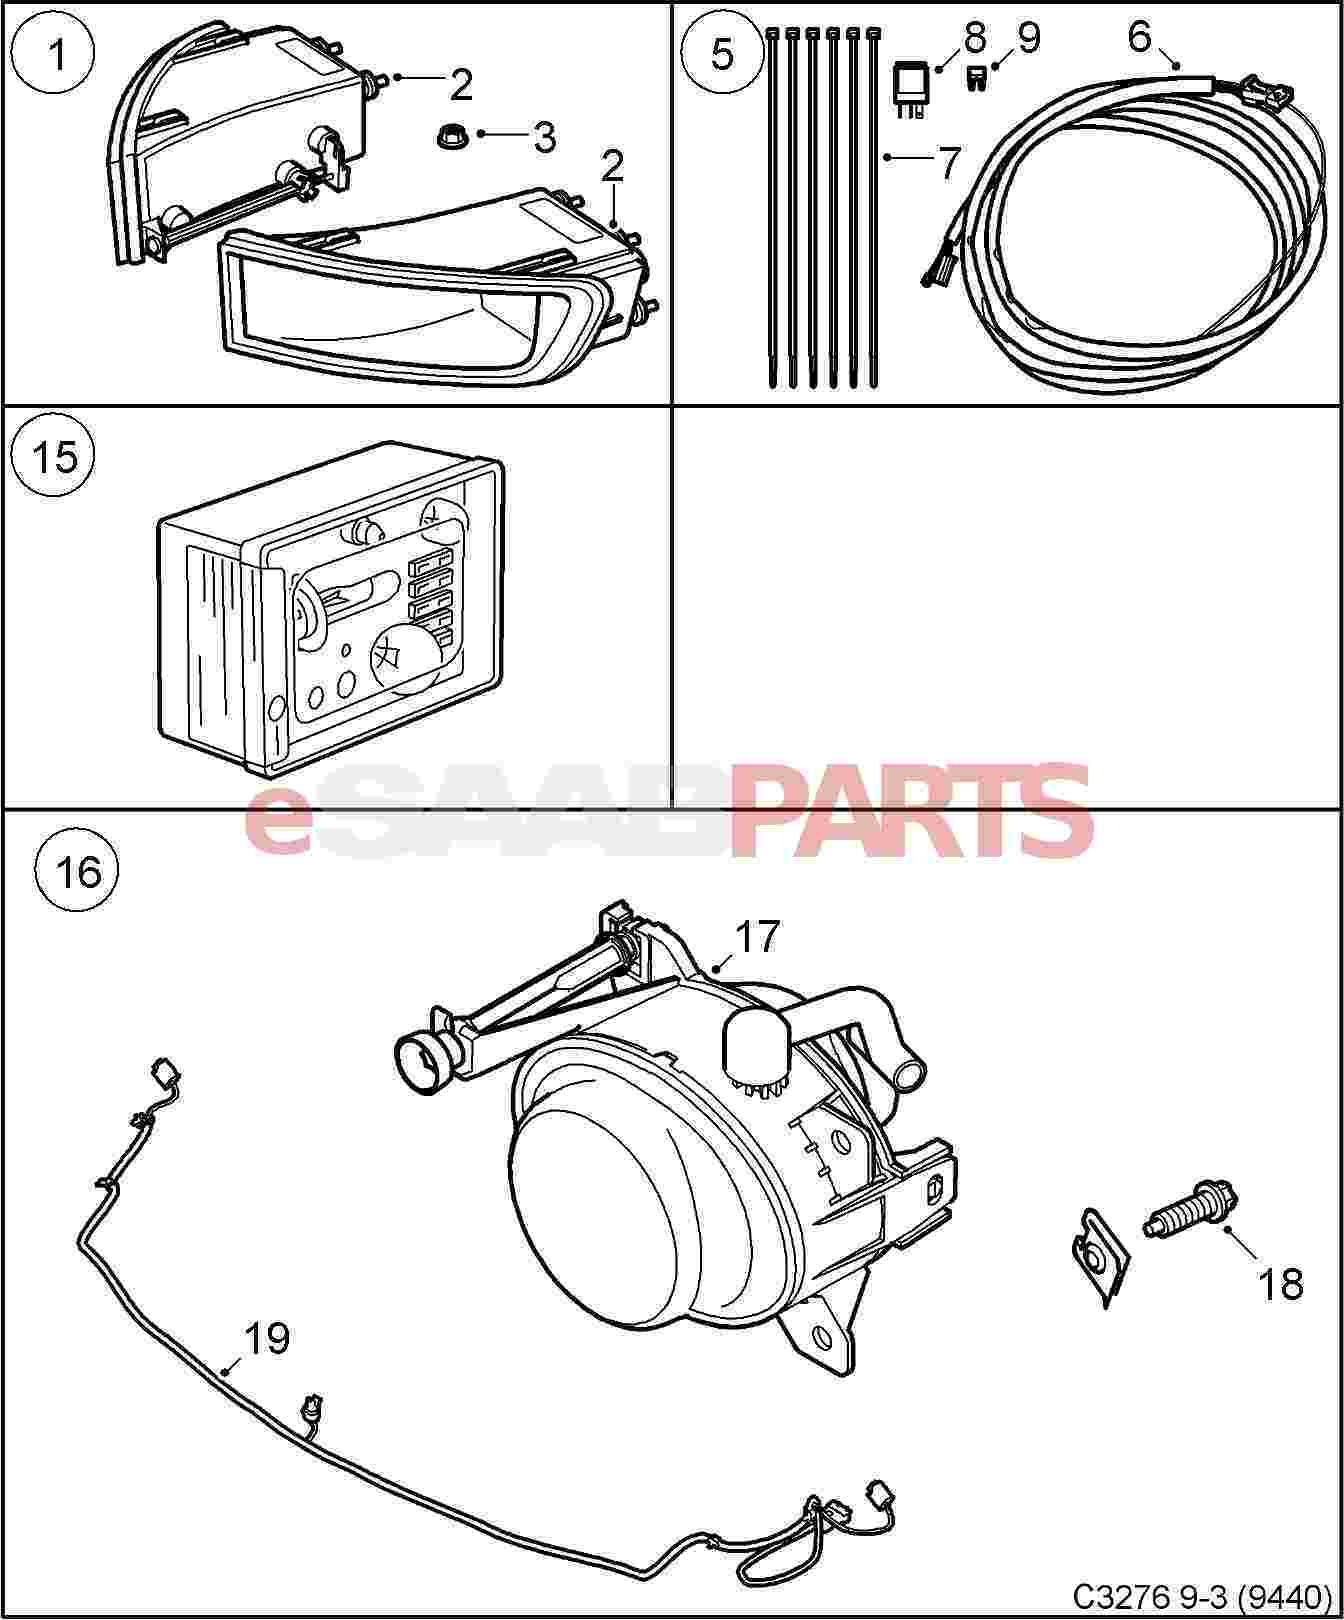 saab 9 3 fog lights wiring diagrams get free image about wiring diagram